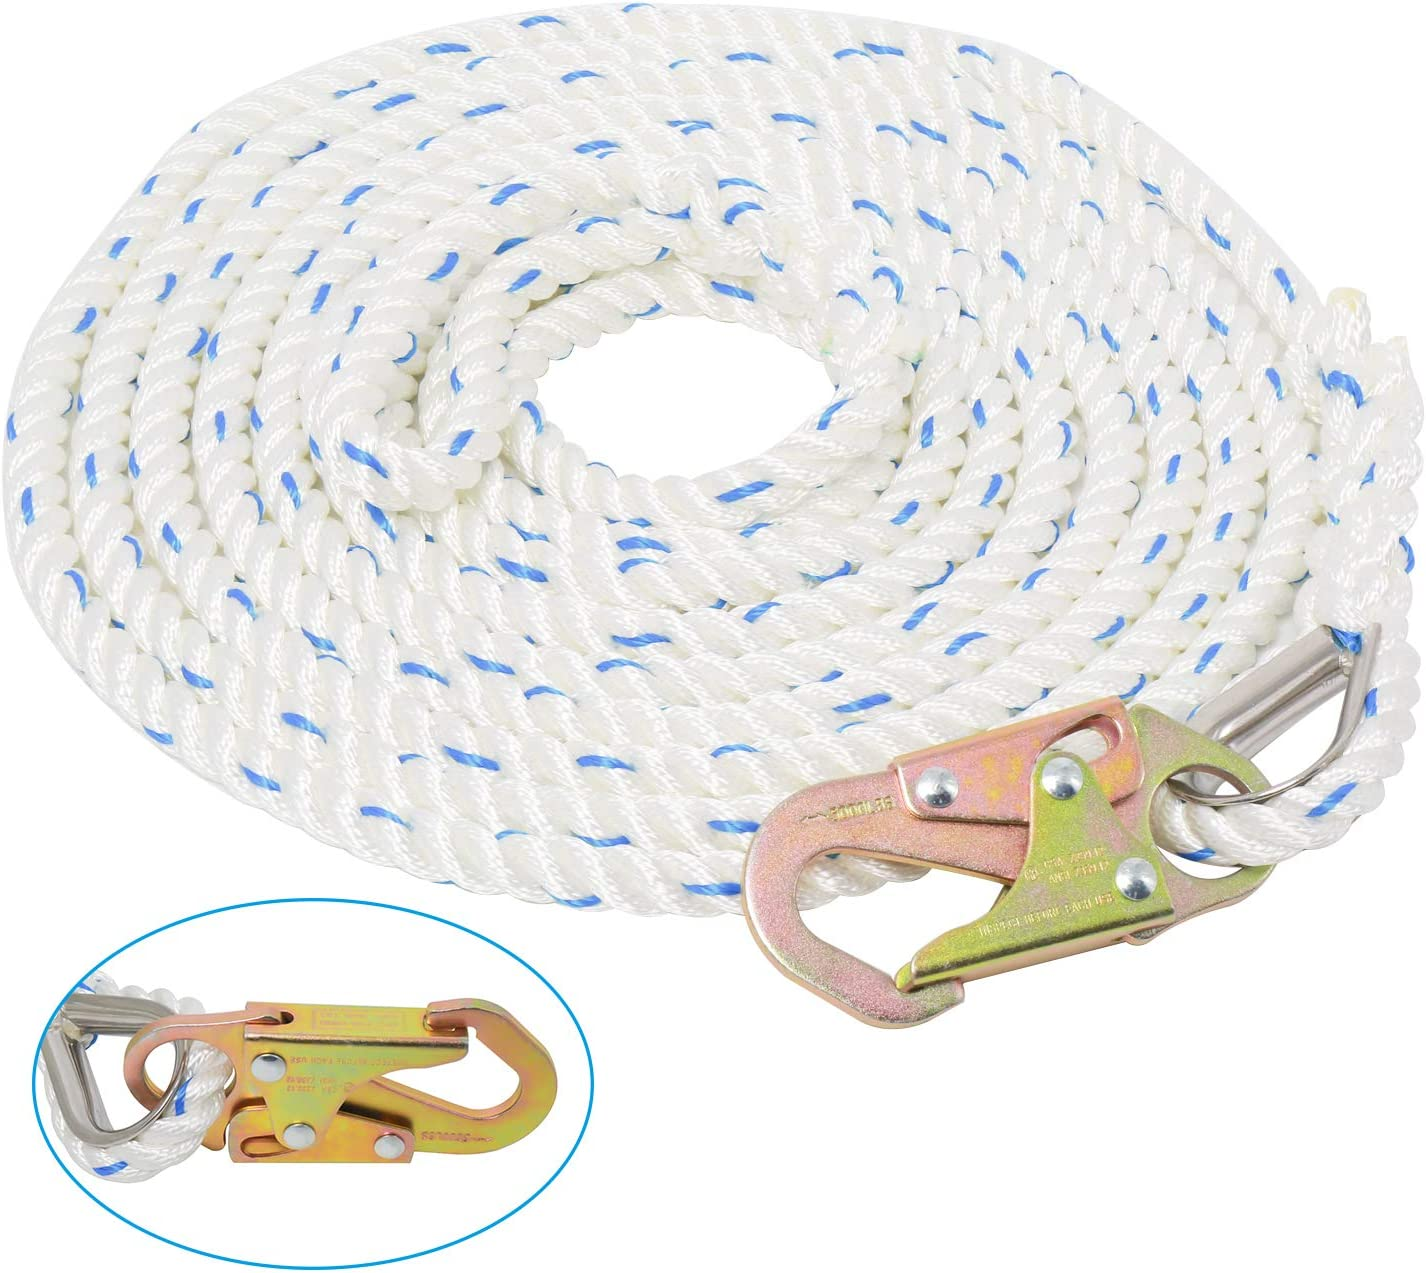 Amarine Made 5/8 Inch 25ft Fall Protection Vertical Lifeline Rope with Back Splice and Snap Hook